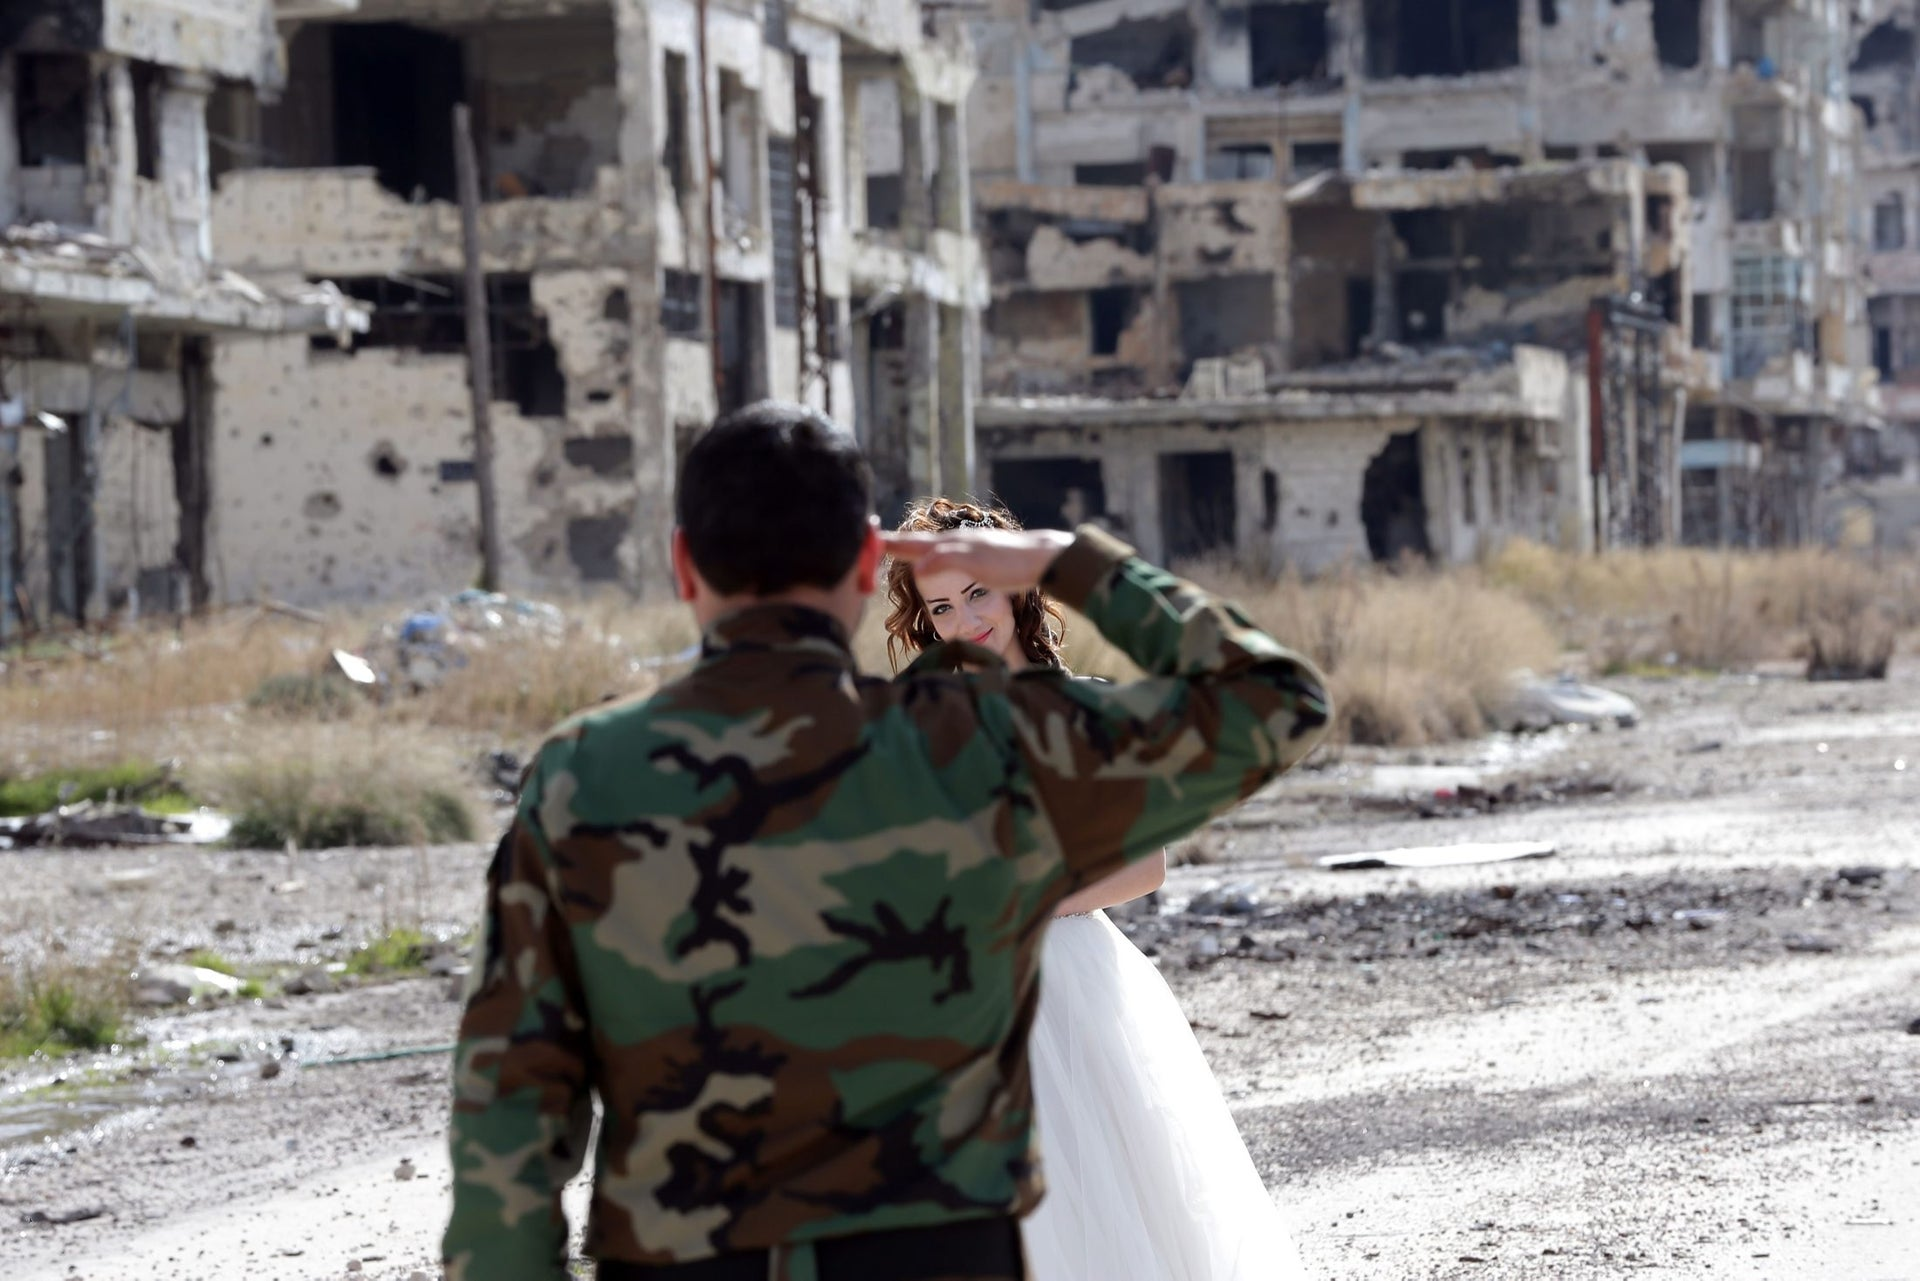 Groom Hassan Youssef salutes his bride Nada Merhi in Homs, Syria, on February 5, 2016.